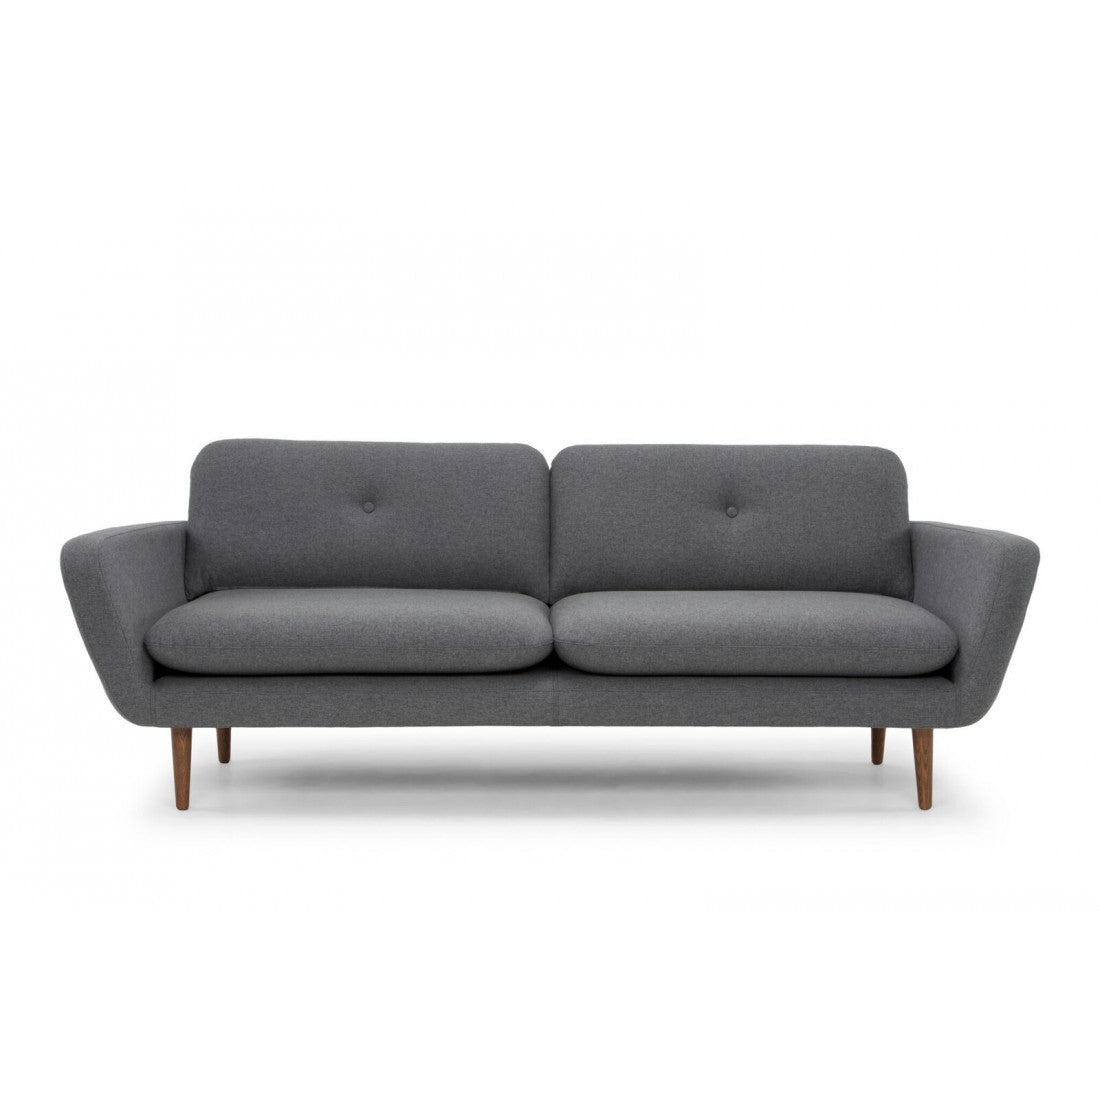 Nicklaus Sofa